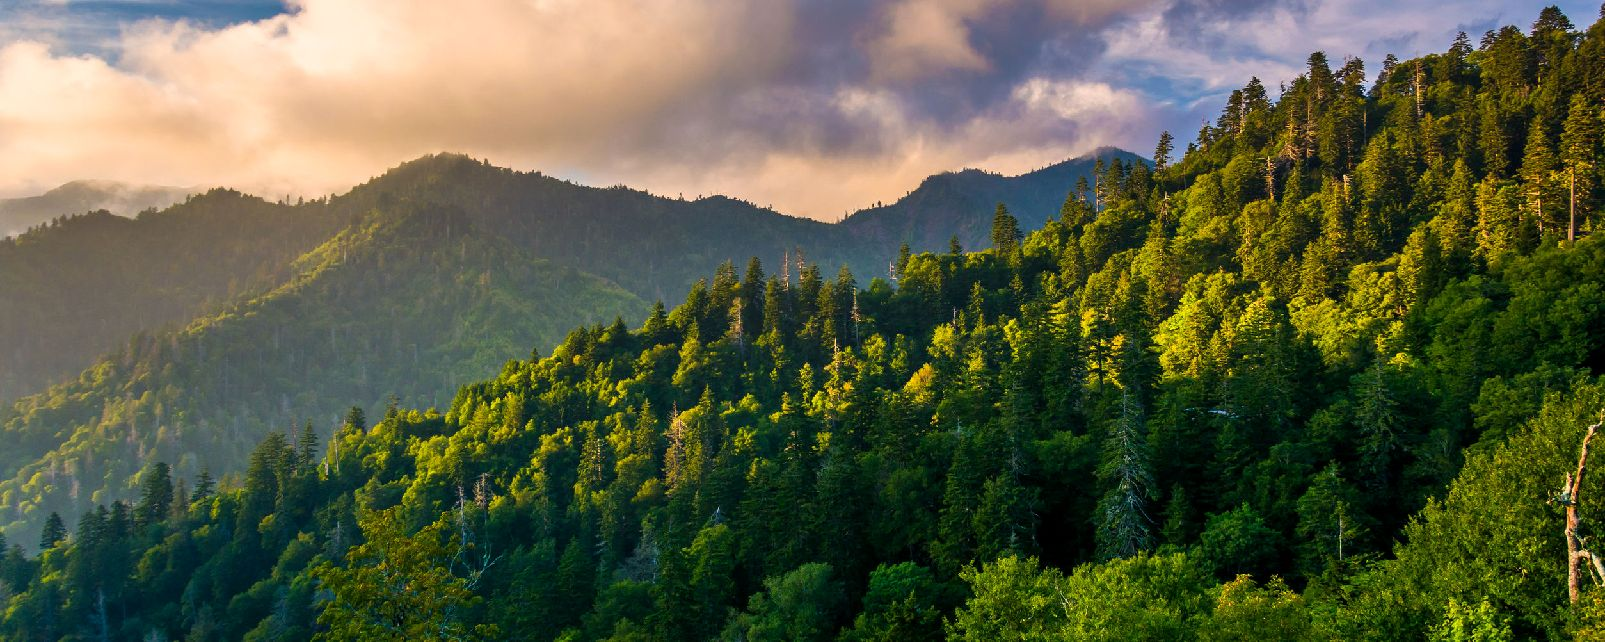 Le parc national des Great Smoky Mountains , Etats-Unis